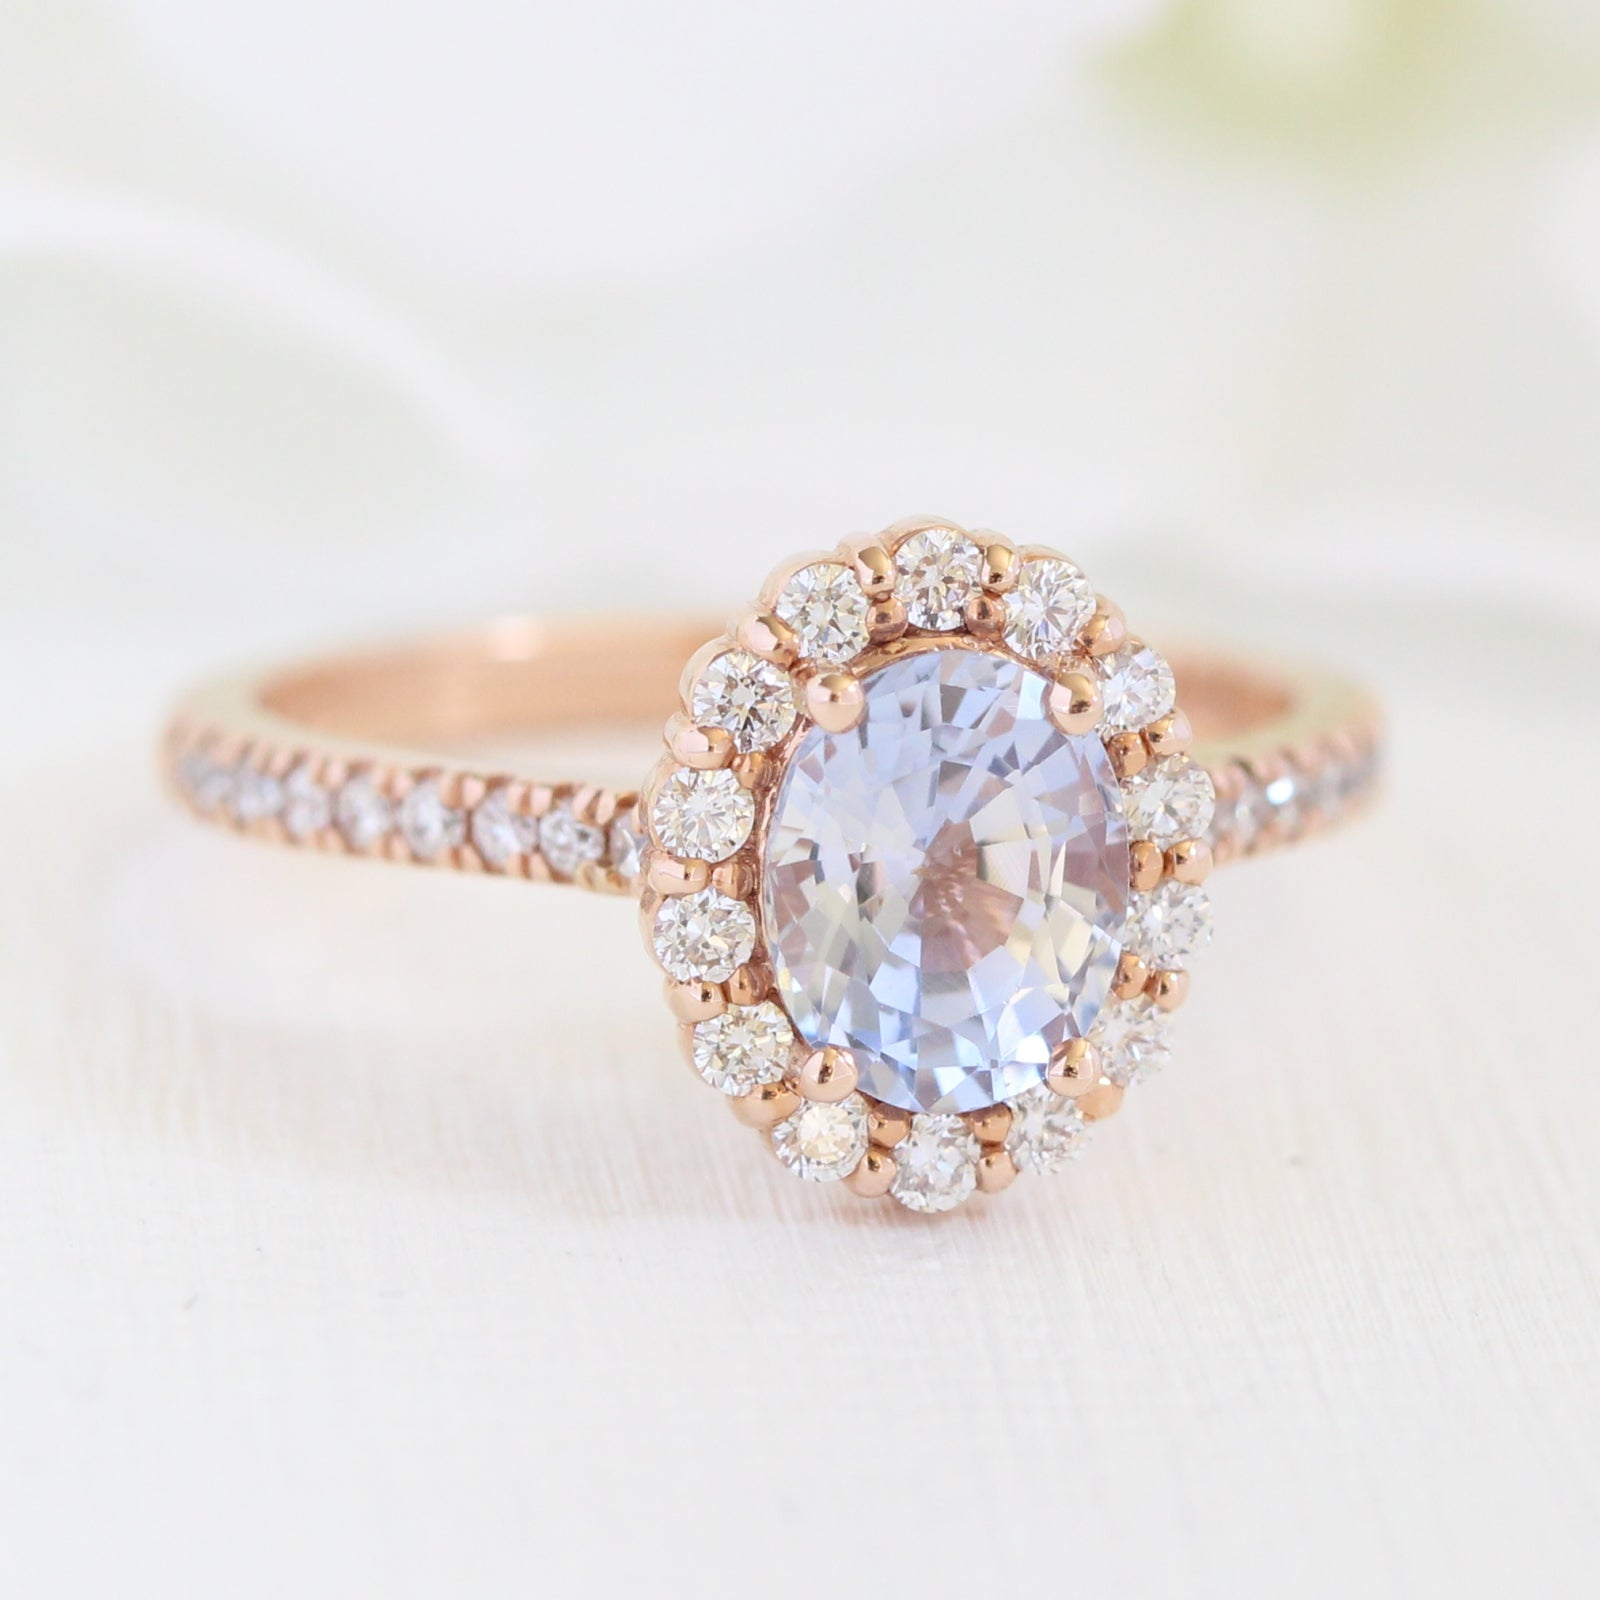 style rings article auction soars recut to promise light in diamond index cnn the million value pink over